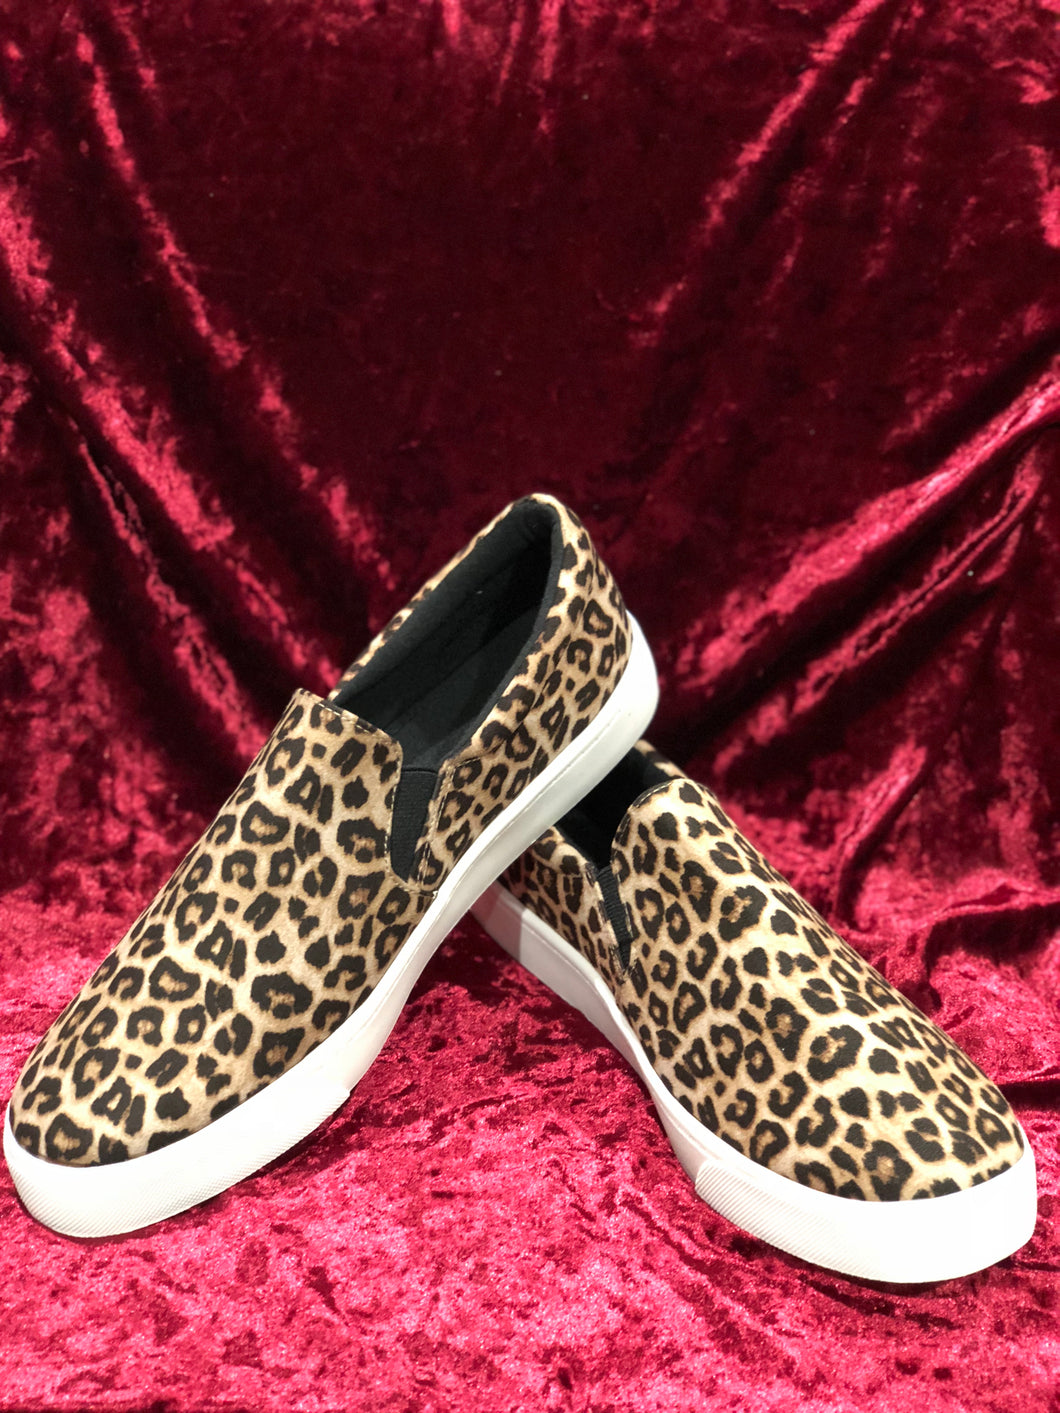 CHEETAH GIRL SLIDE ON SNEAKERS